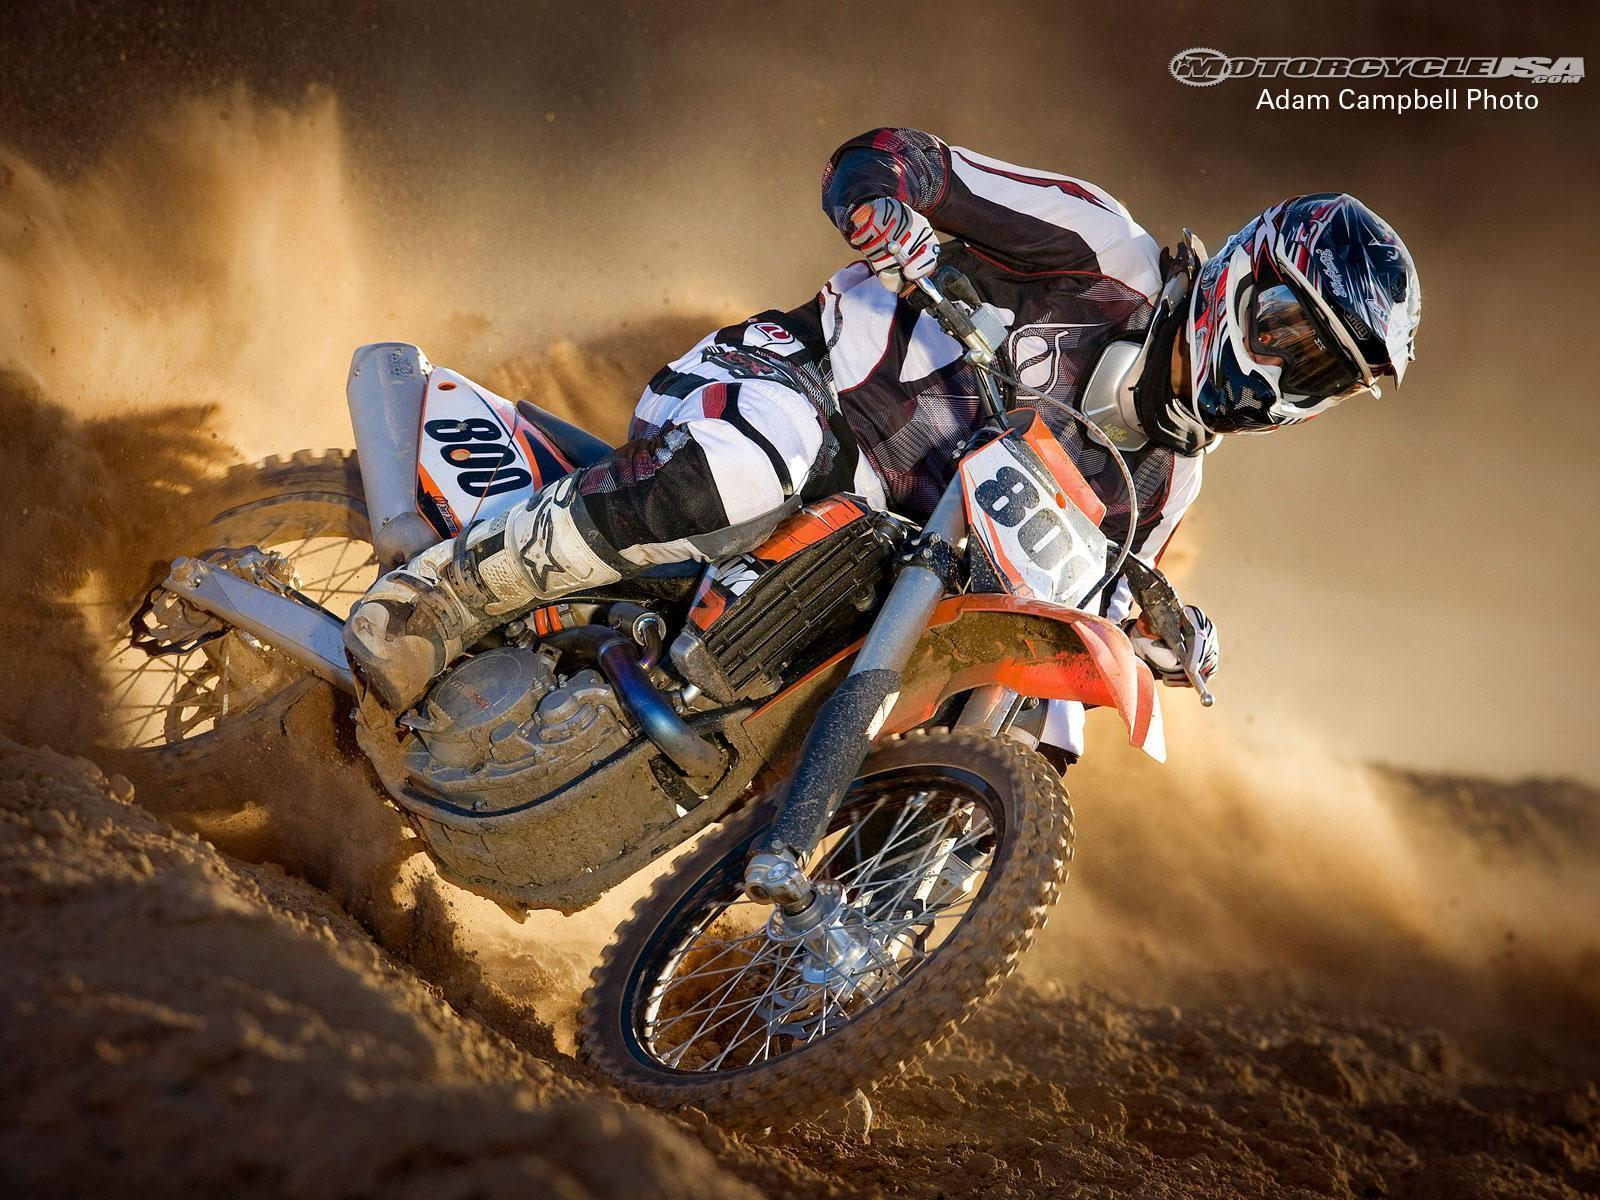 KTM Dirt Bike Wallpapers - 5 of 6 - 1600x1200 - Motorcycle USA